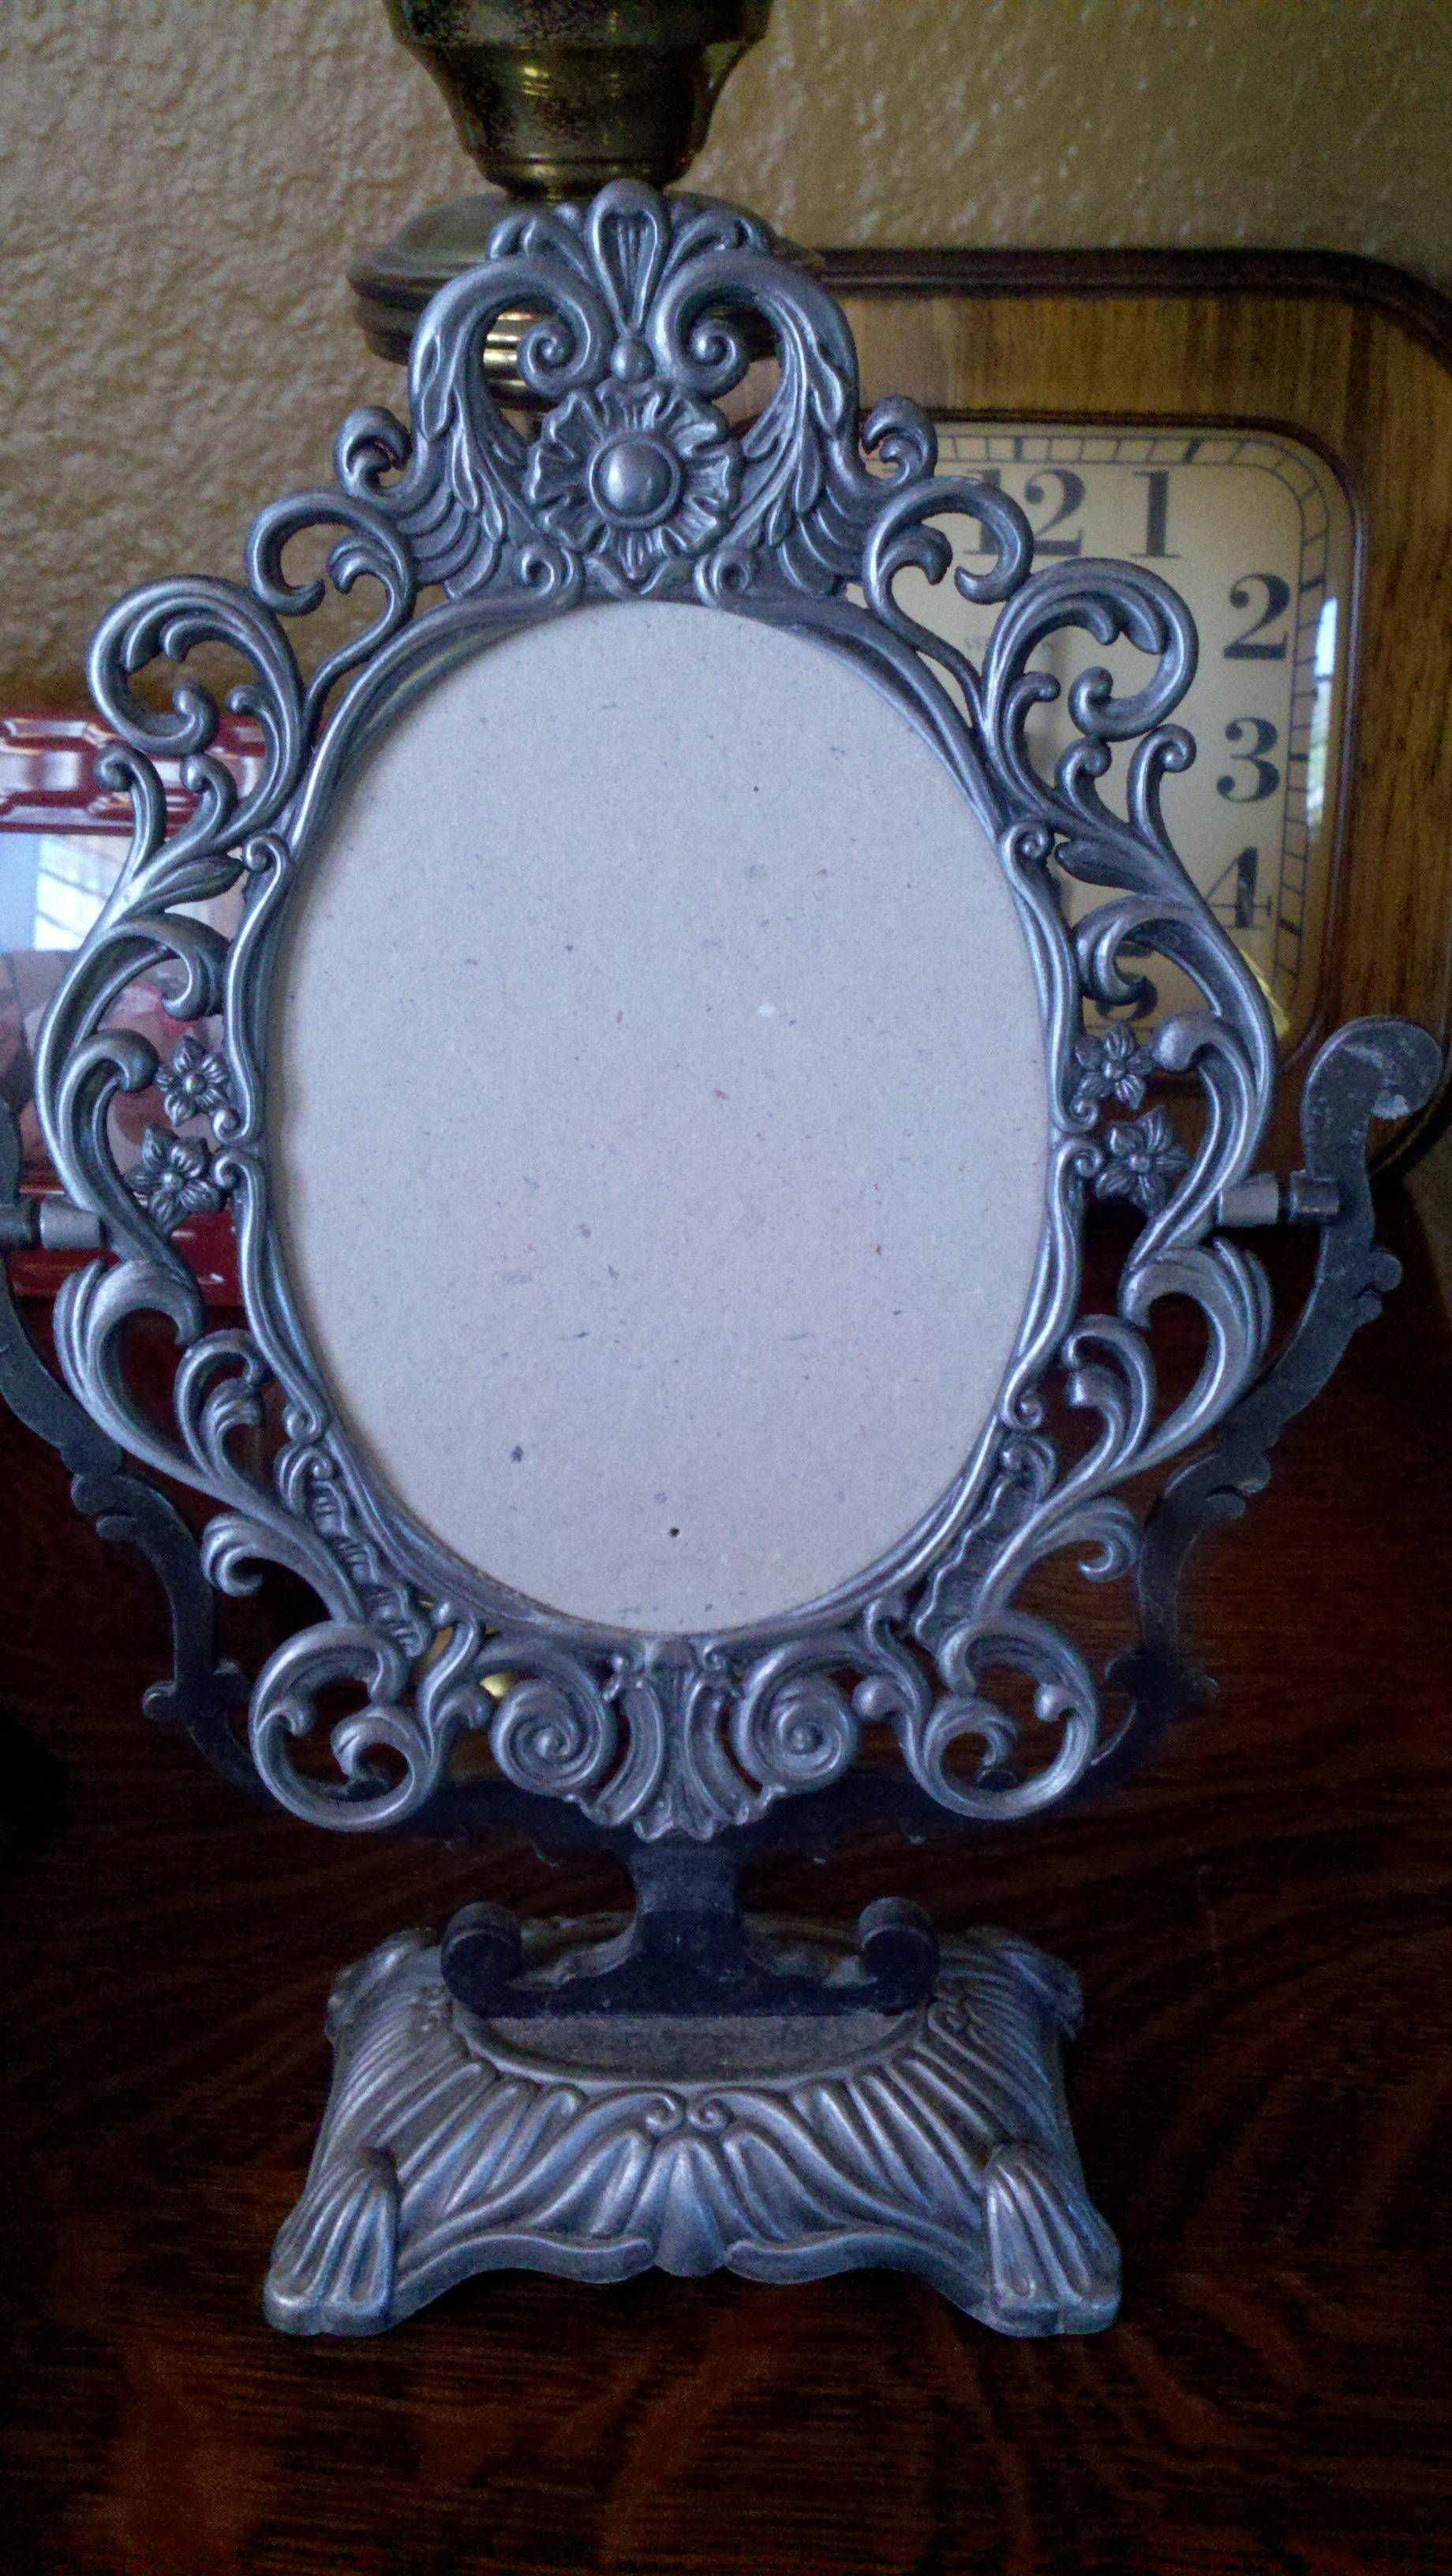 Pewter frame found at flea market today $2.00